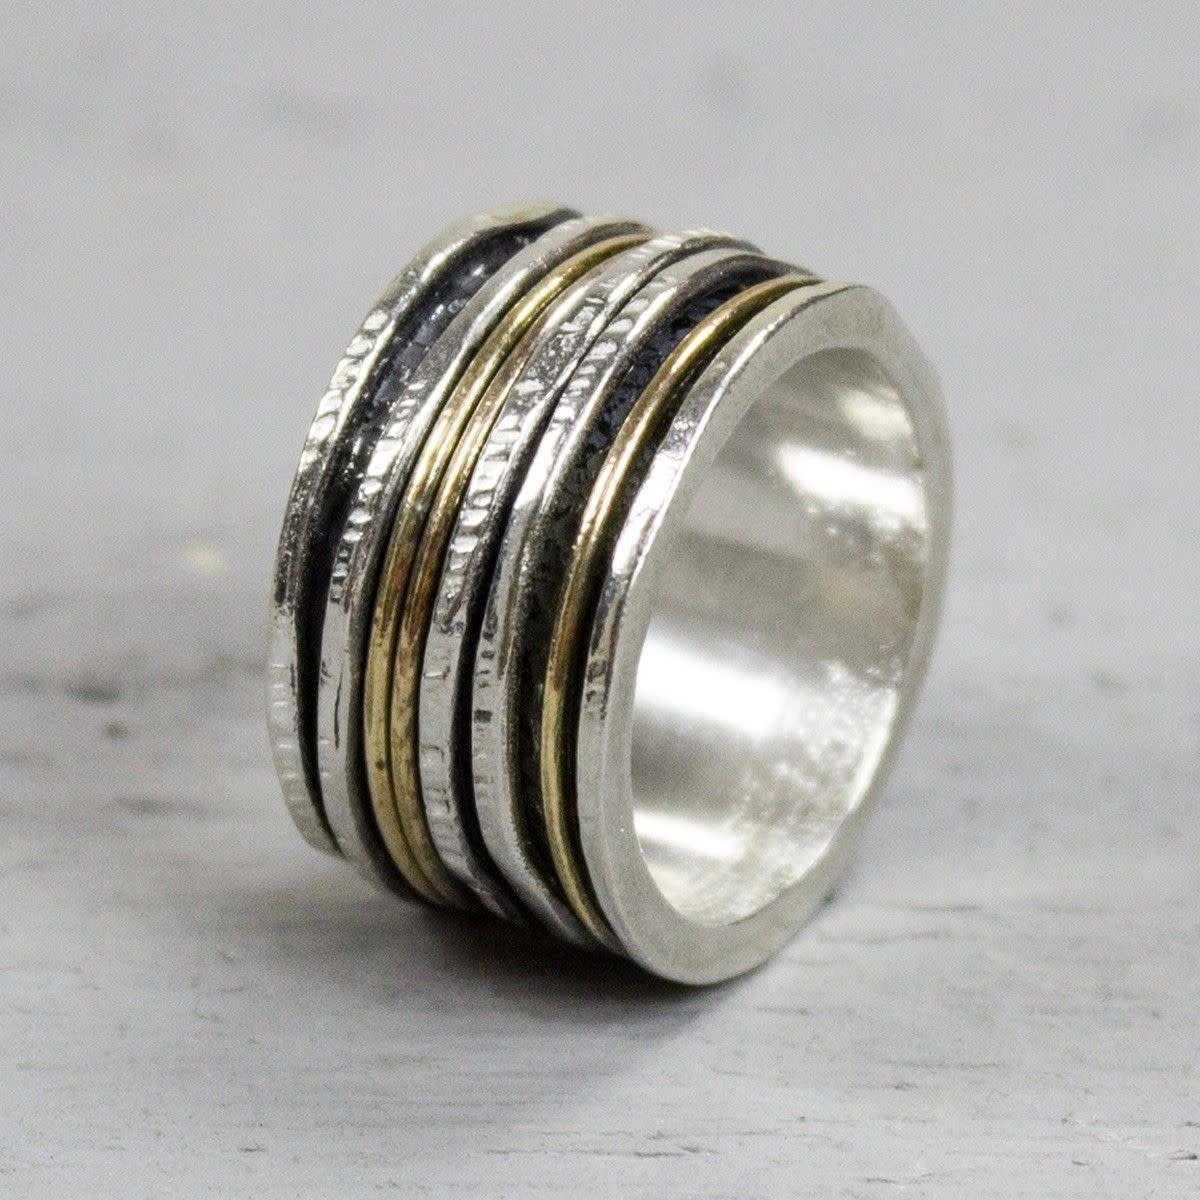 Ring Silver + Gold Filled 19436-1